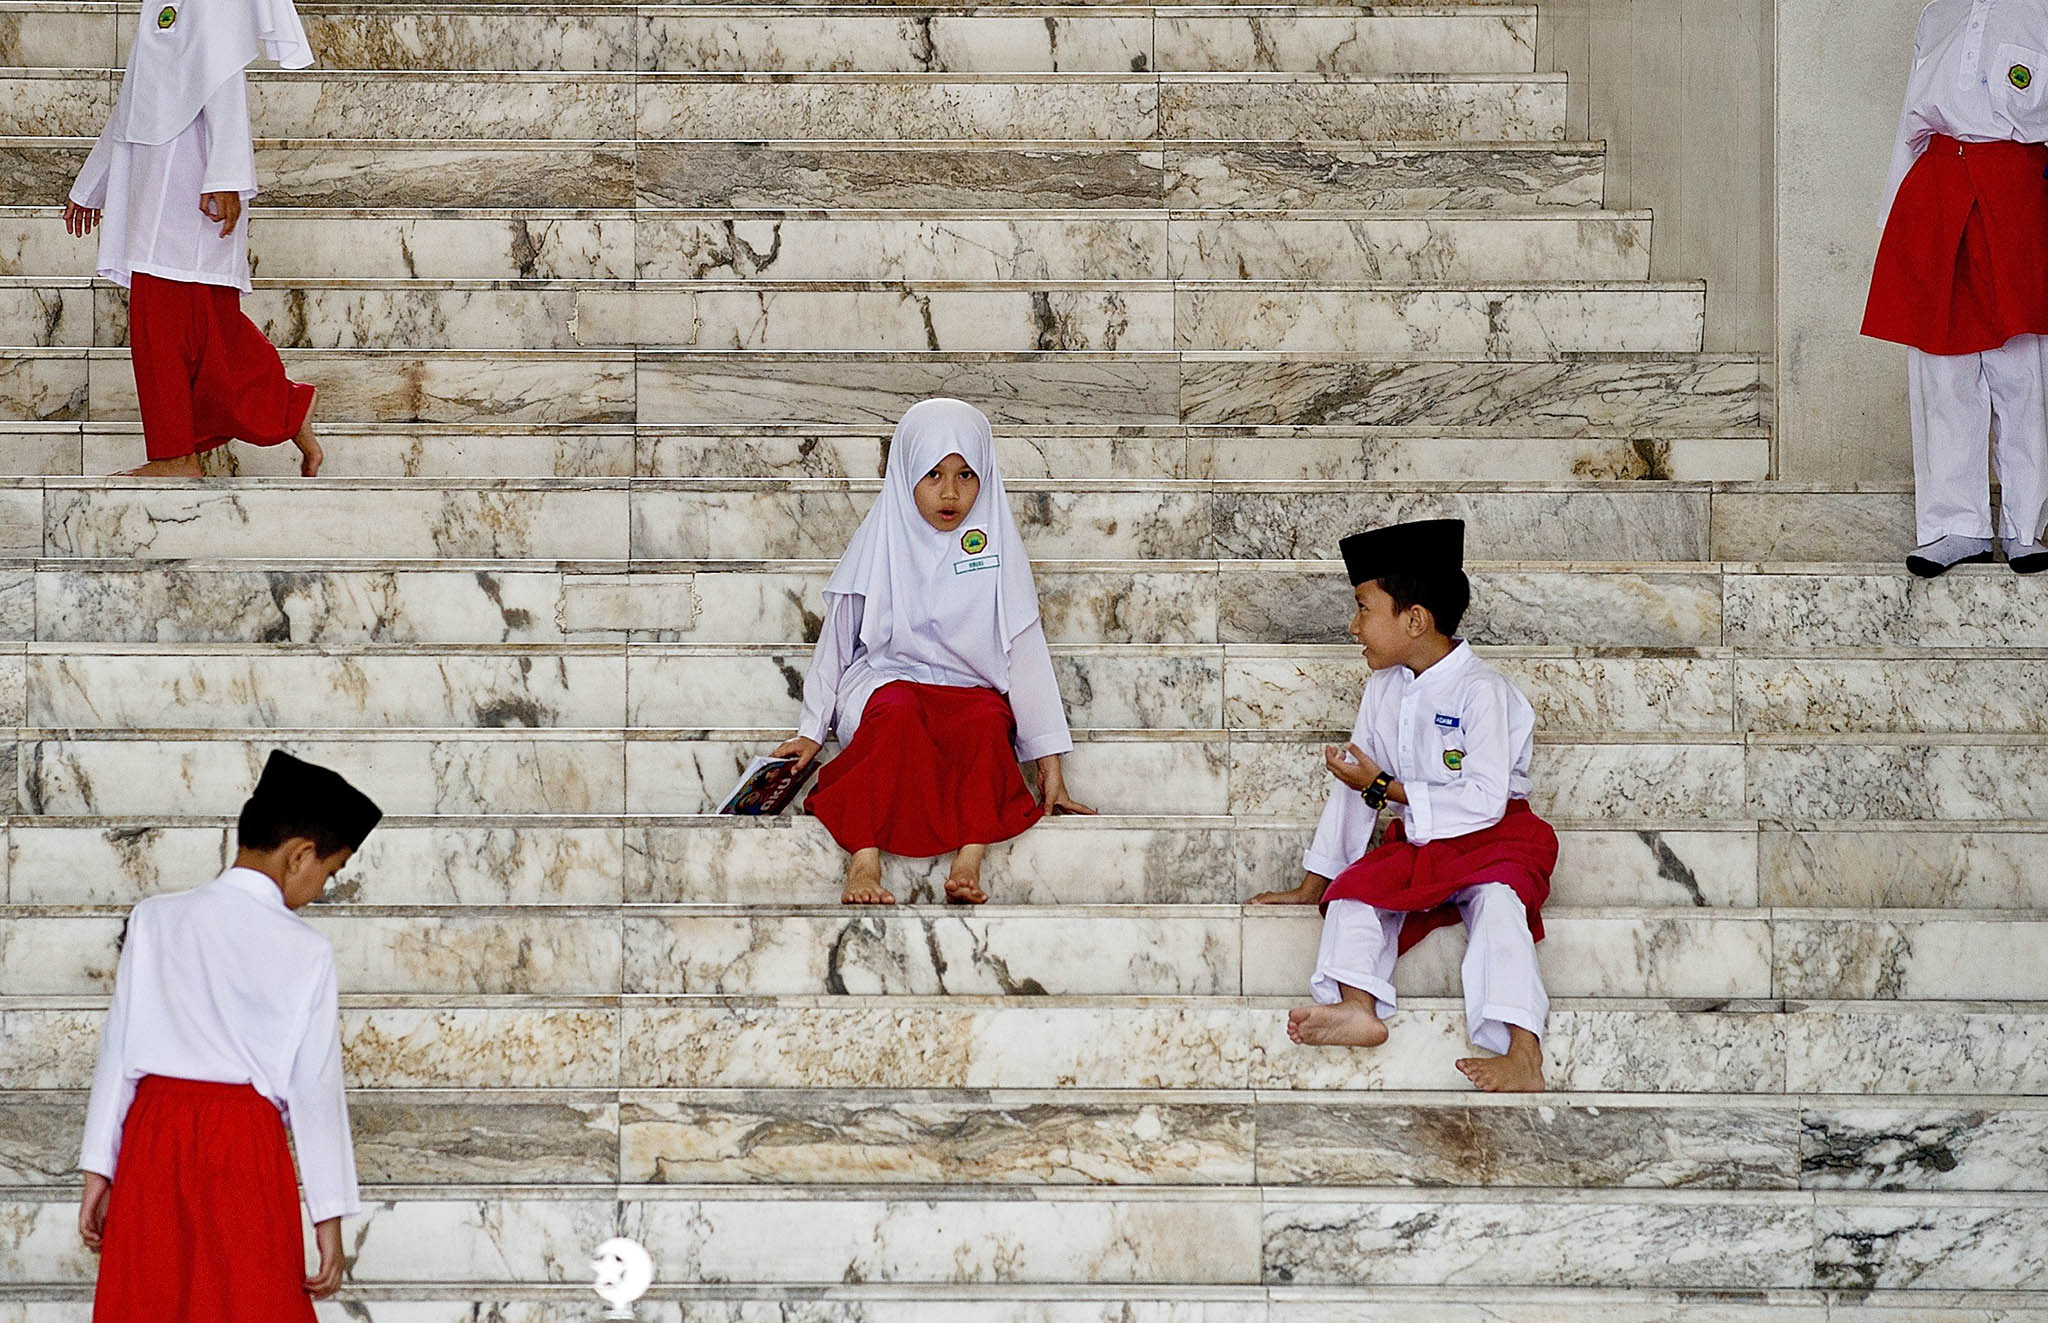 TOPSHOTS Young Malaysian Muslim children...TOPSHOTS Young Malaysian Muslim children play on the steps of a mosque after attending their classes during the Islamic month of Ramadan in Kuala Lumpur on July 2, 2014.  Across the Muslim world, the faithful fast from dawn to dusk, and abstain from eating, drinking, smoking and having sex during that time as they strive to be more pious and charitable.   AFP PHOTO / MANAN VATSYAYANAMANAN VATSYAYANA/AFP/Getty Images